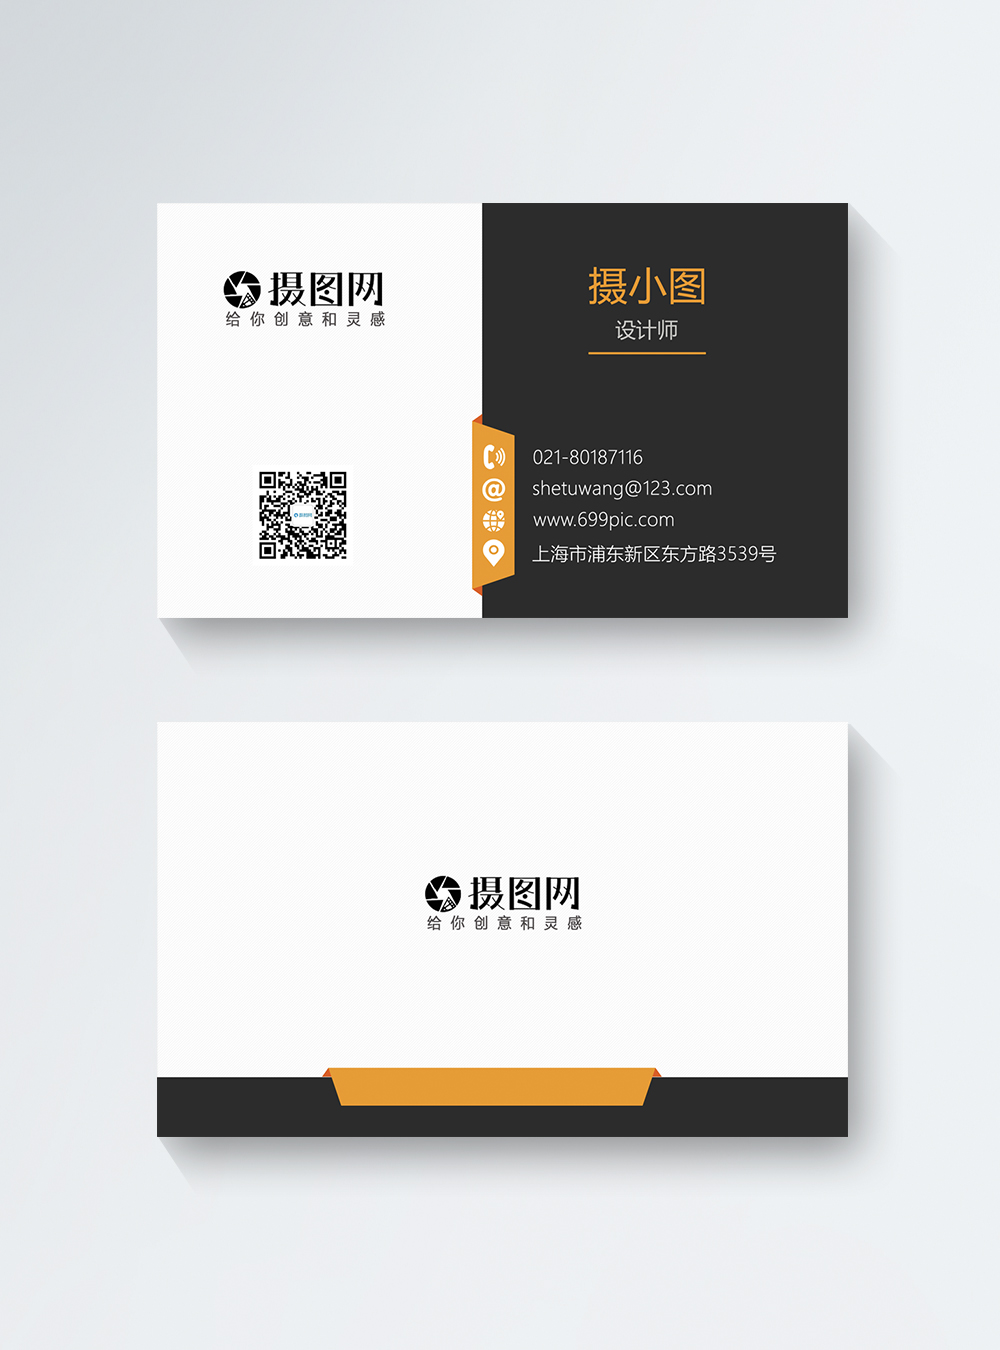 Download Yellow Business Card Template Image Picture Free Download 400900337 Lovepik Com PSD Mockup Templates